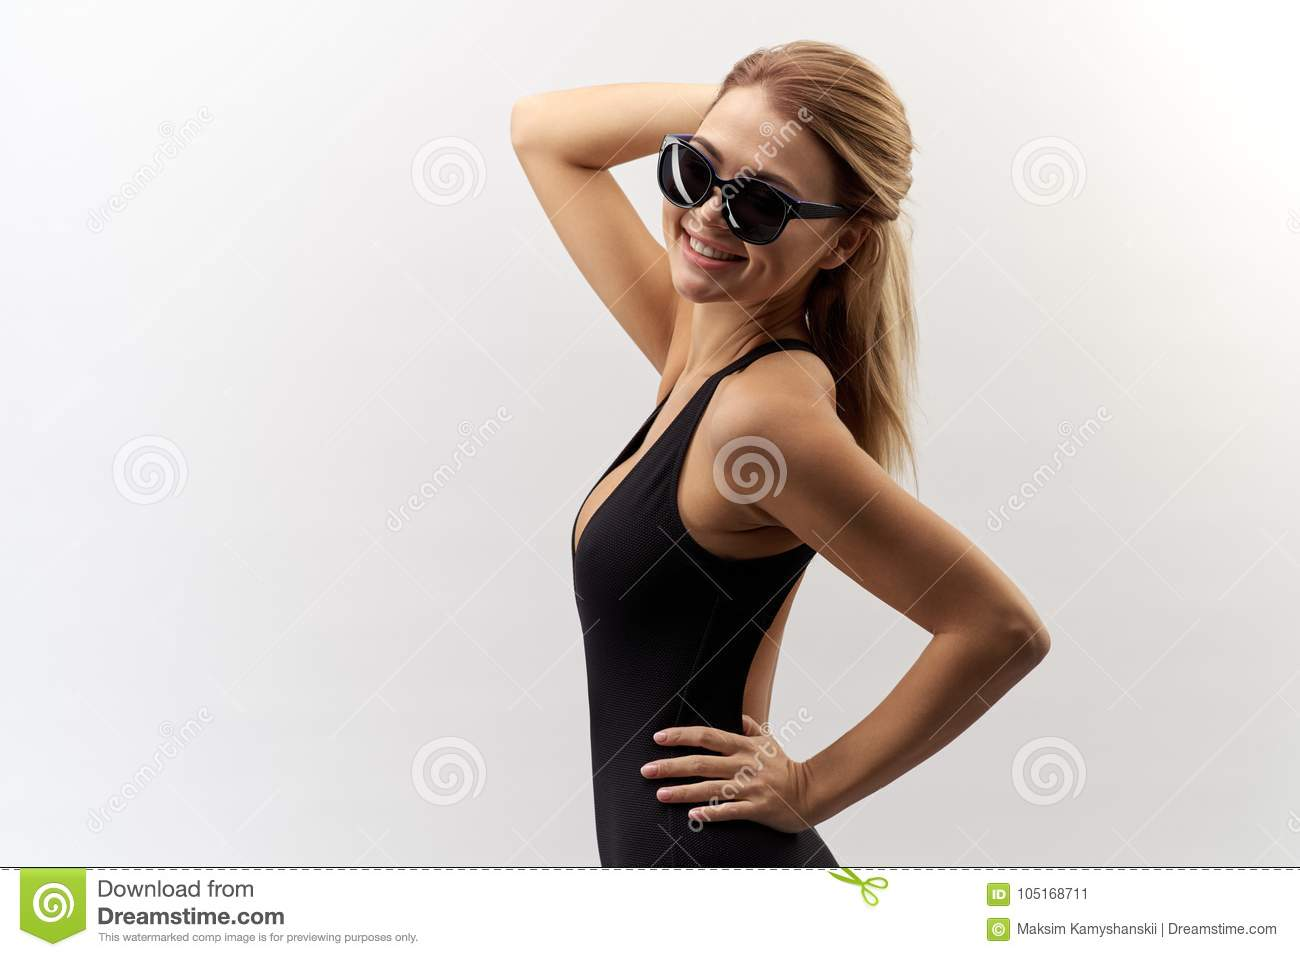 2cd61dee13d Young long-haired white-skinned girl in a black bathing suit and sun  glasses with a smile, posing for contrast Studio portrait on isolated white  background